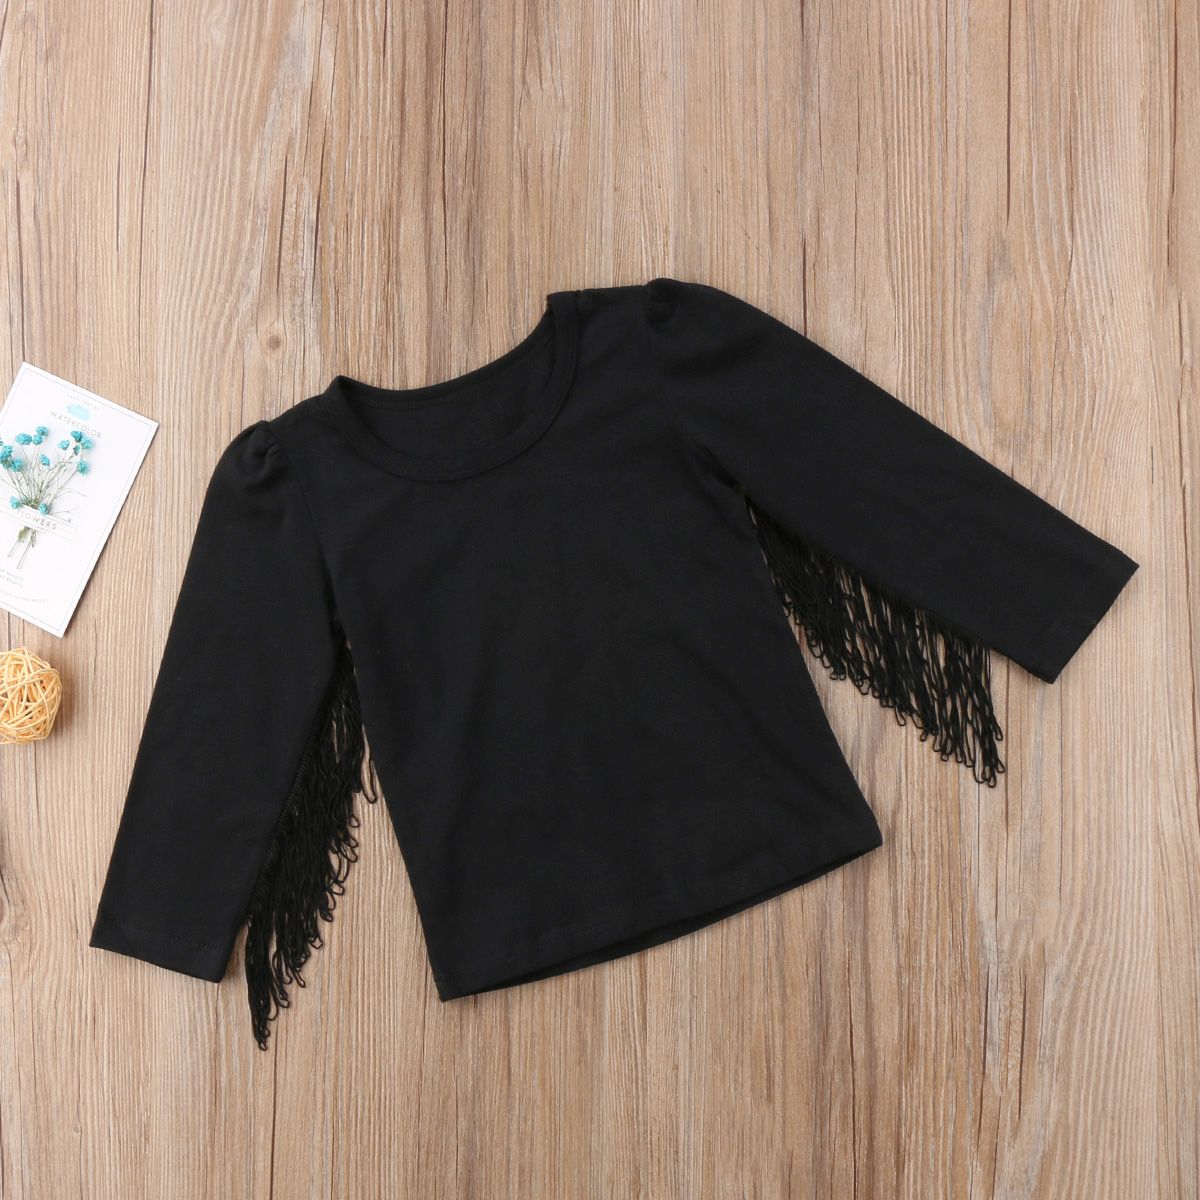 e04efc2b4 2018 New Fashion Kids Baby Girls Tassel Tops Shirt Casual Long ...